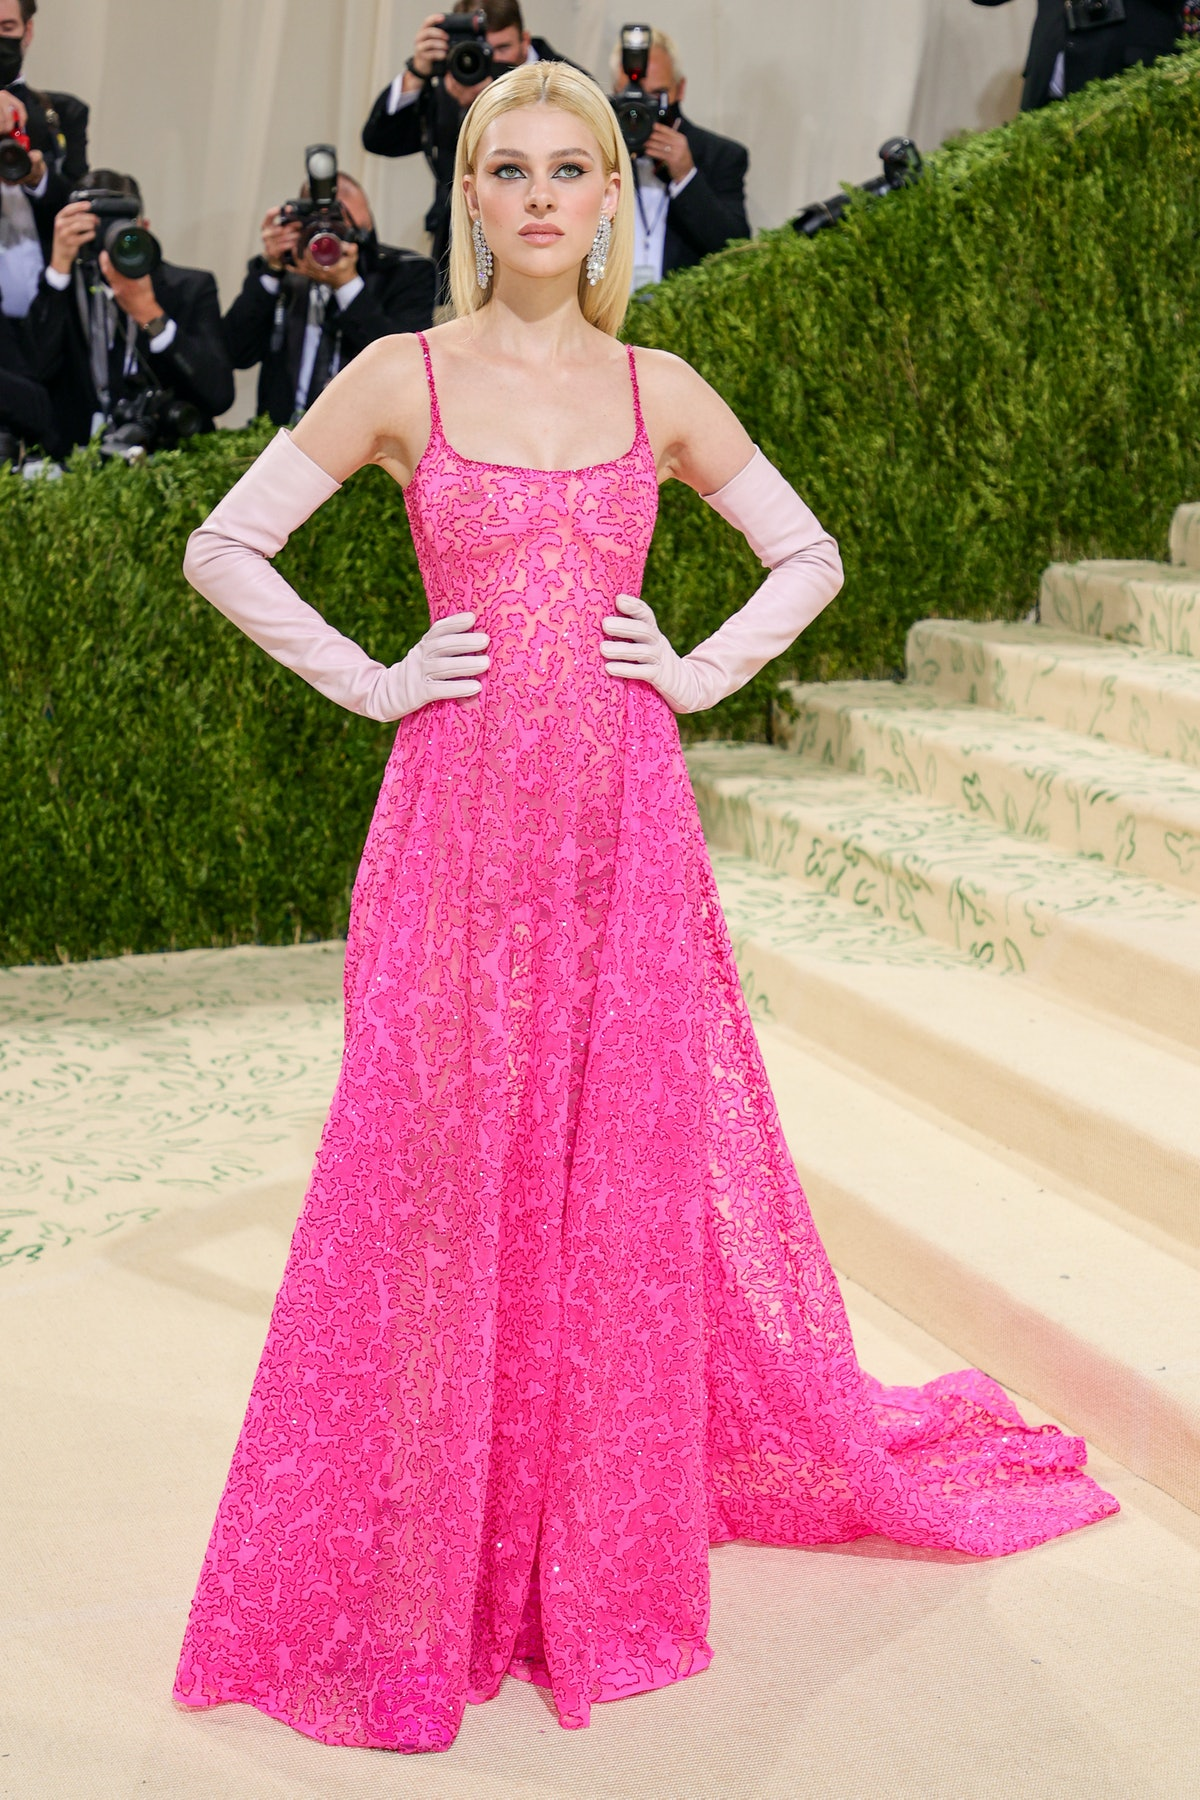 Nicola Peltz attends The 2021 Met Gala Celebrating In America: A Lexicon Of Fashion at Metropolitan ...